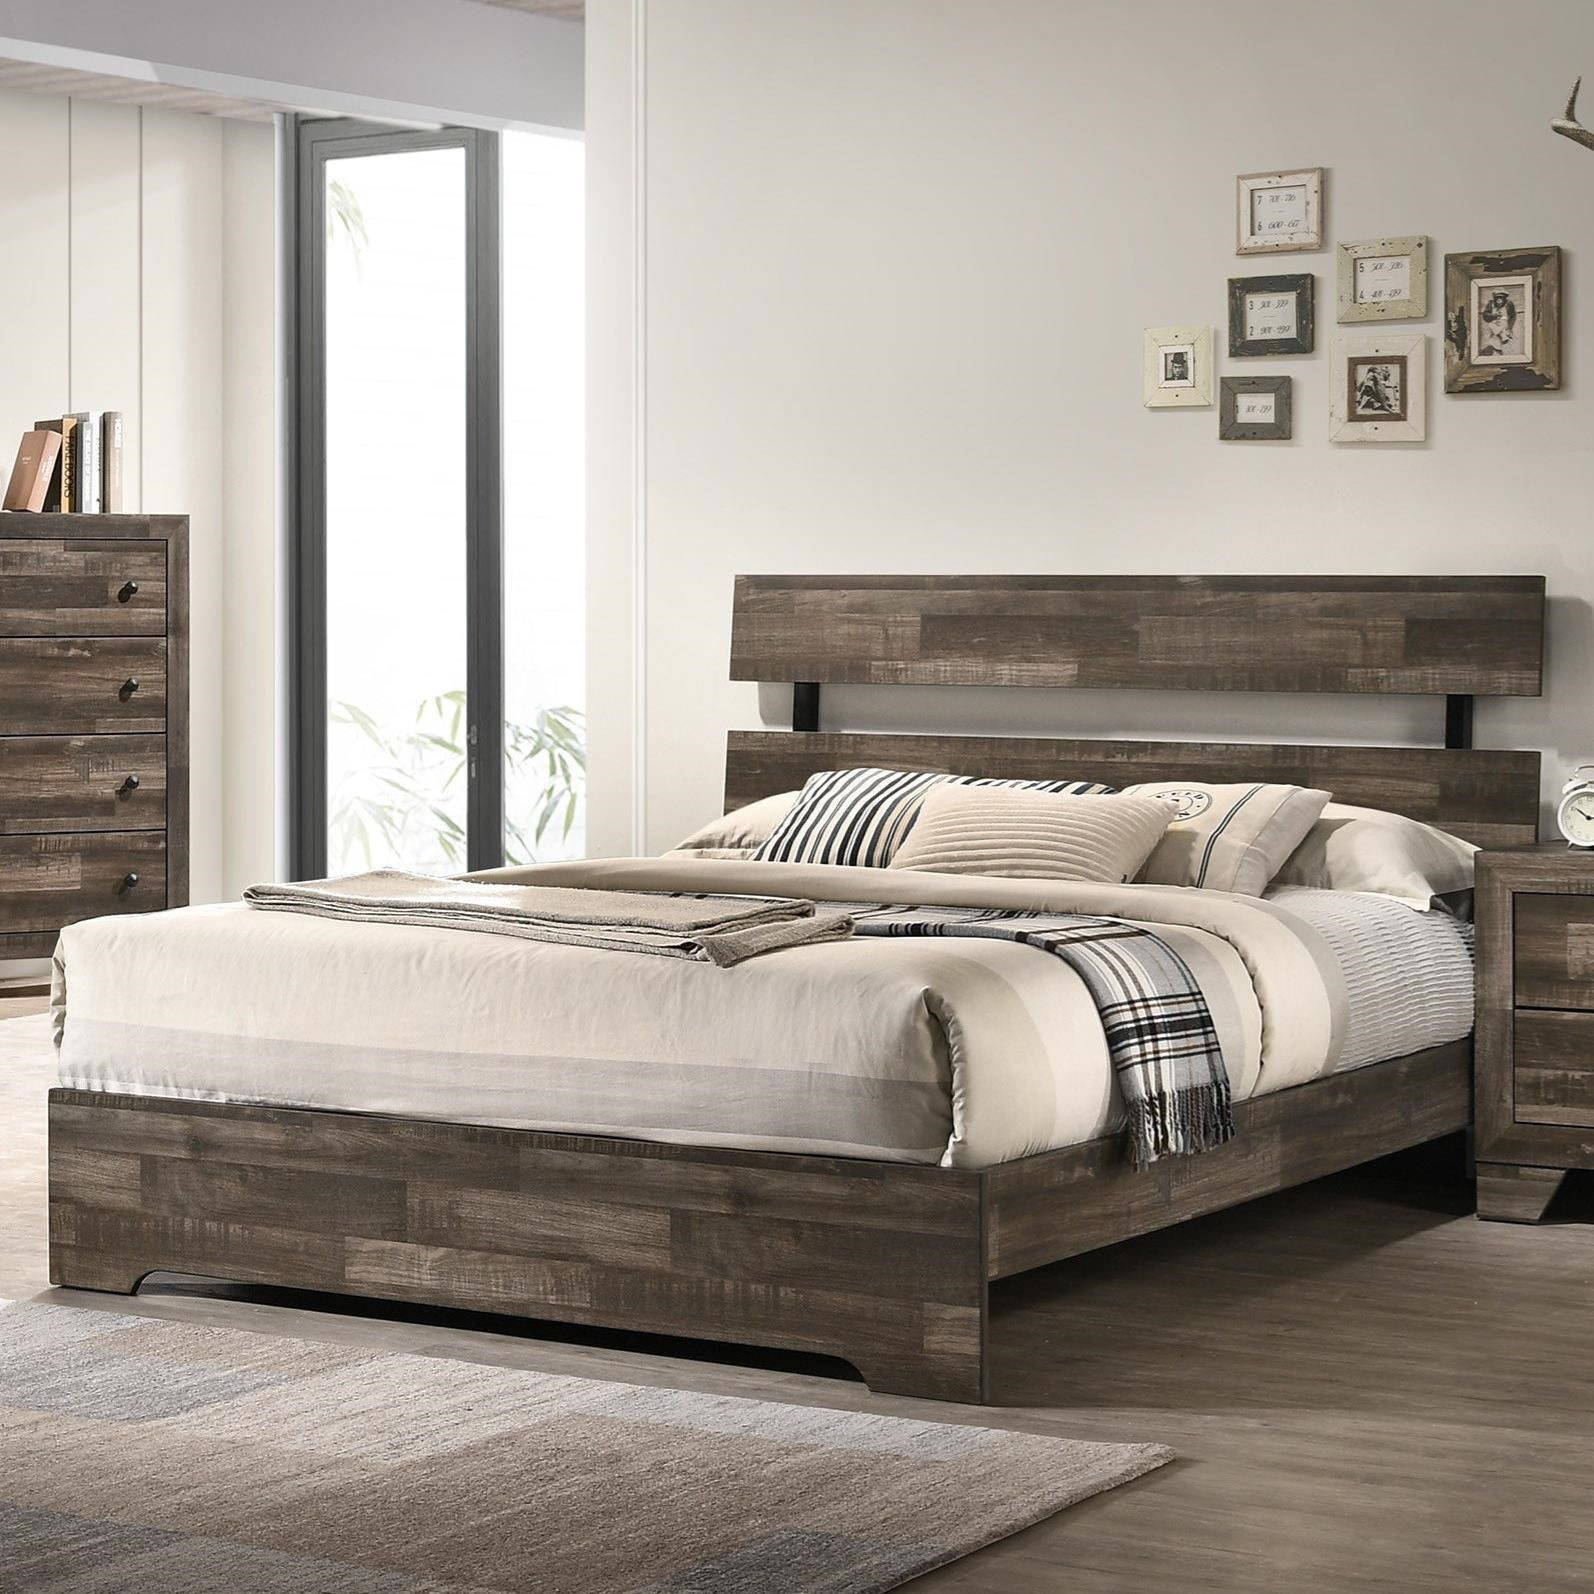 Atticus King Bed by Crown Mark at Darvin Furniture